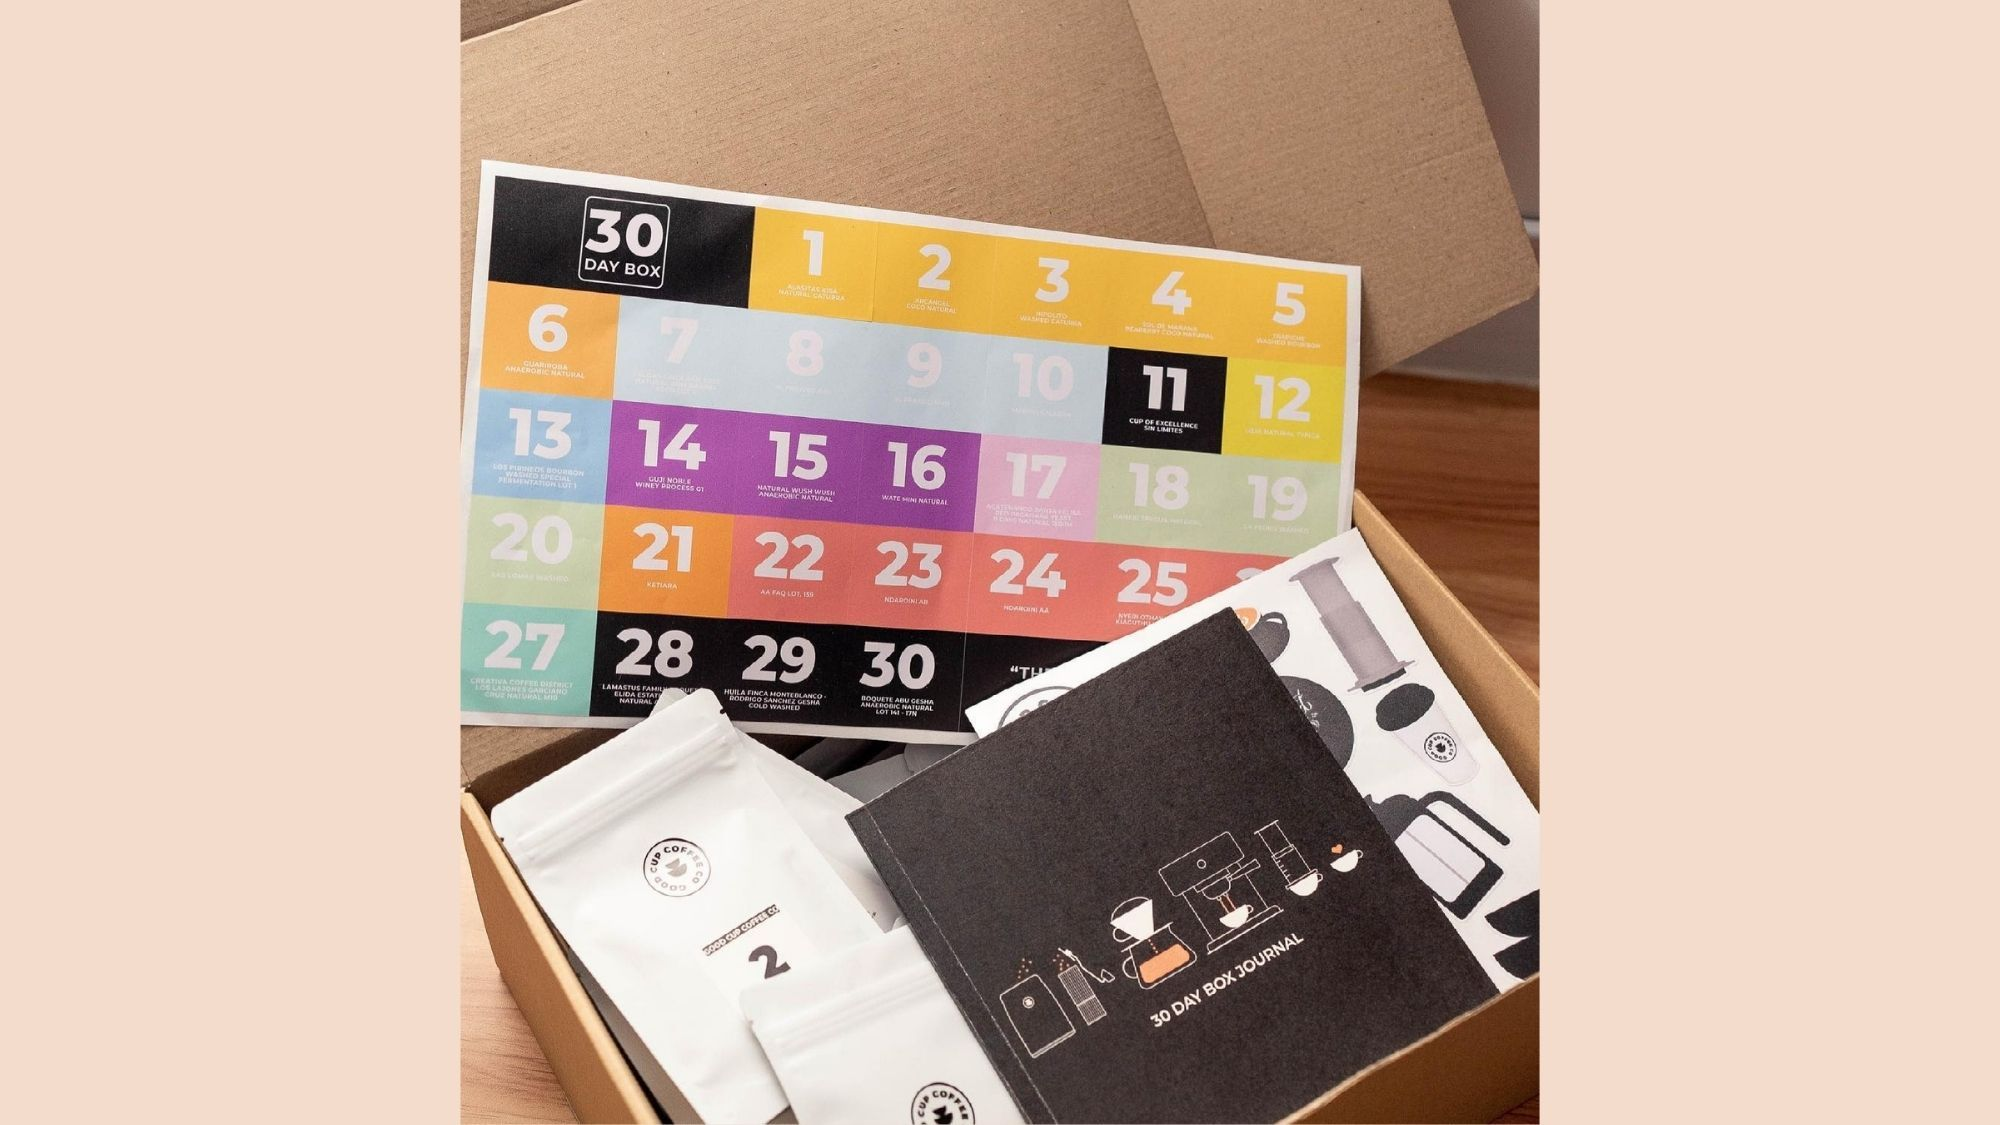 30-day-tasting box gives coffee lovers diverse tastes